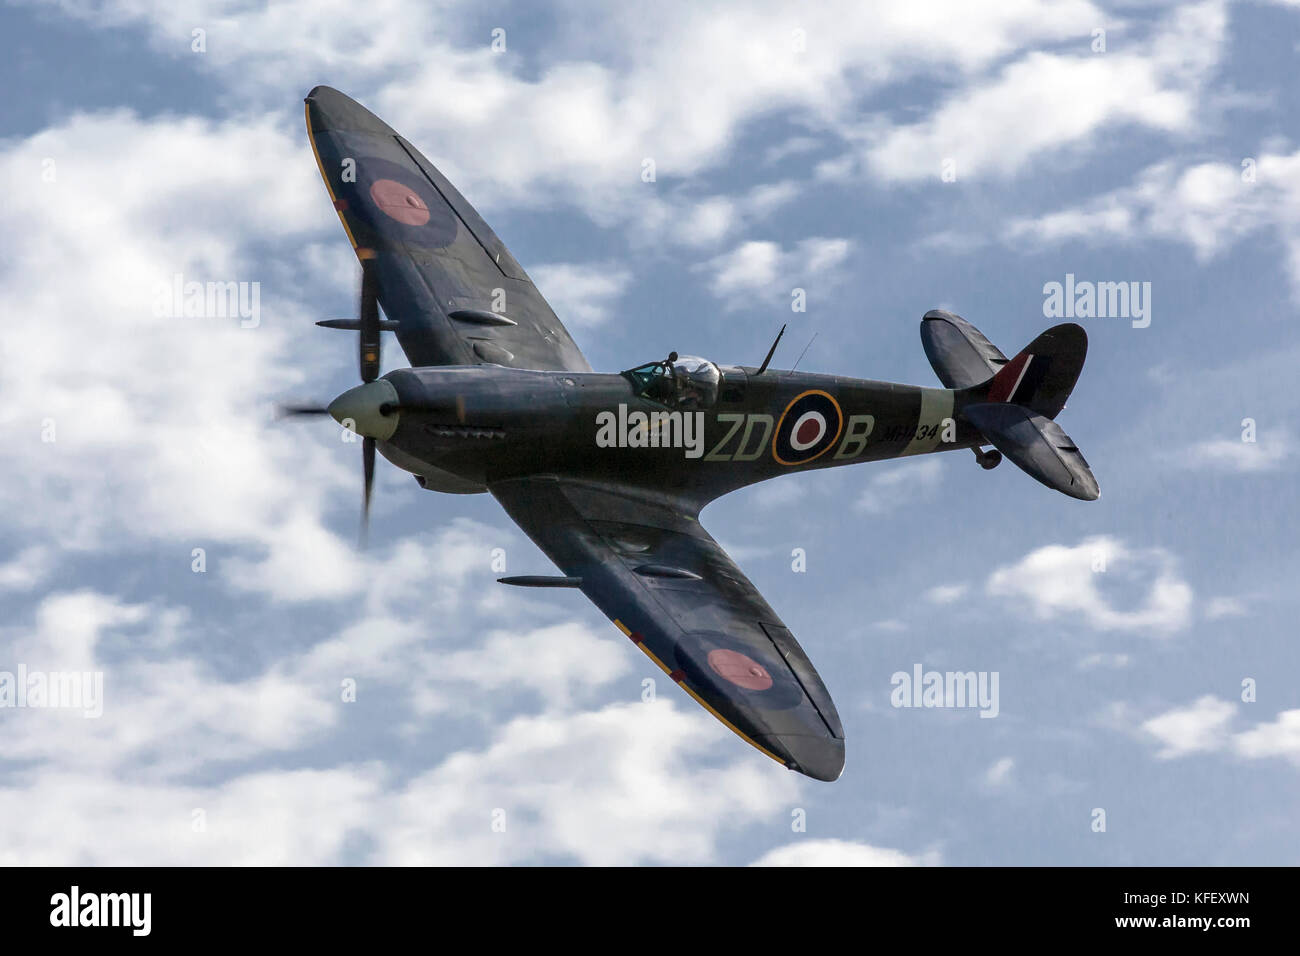 LUQA, MALTA - SEP 29 - Supermarine Spitfire flies by during the 20th edition of the Malta International Airshow Stock Photo